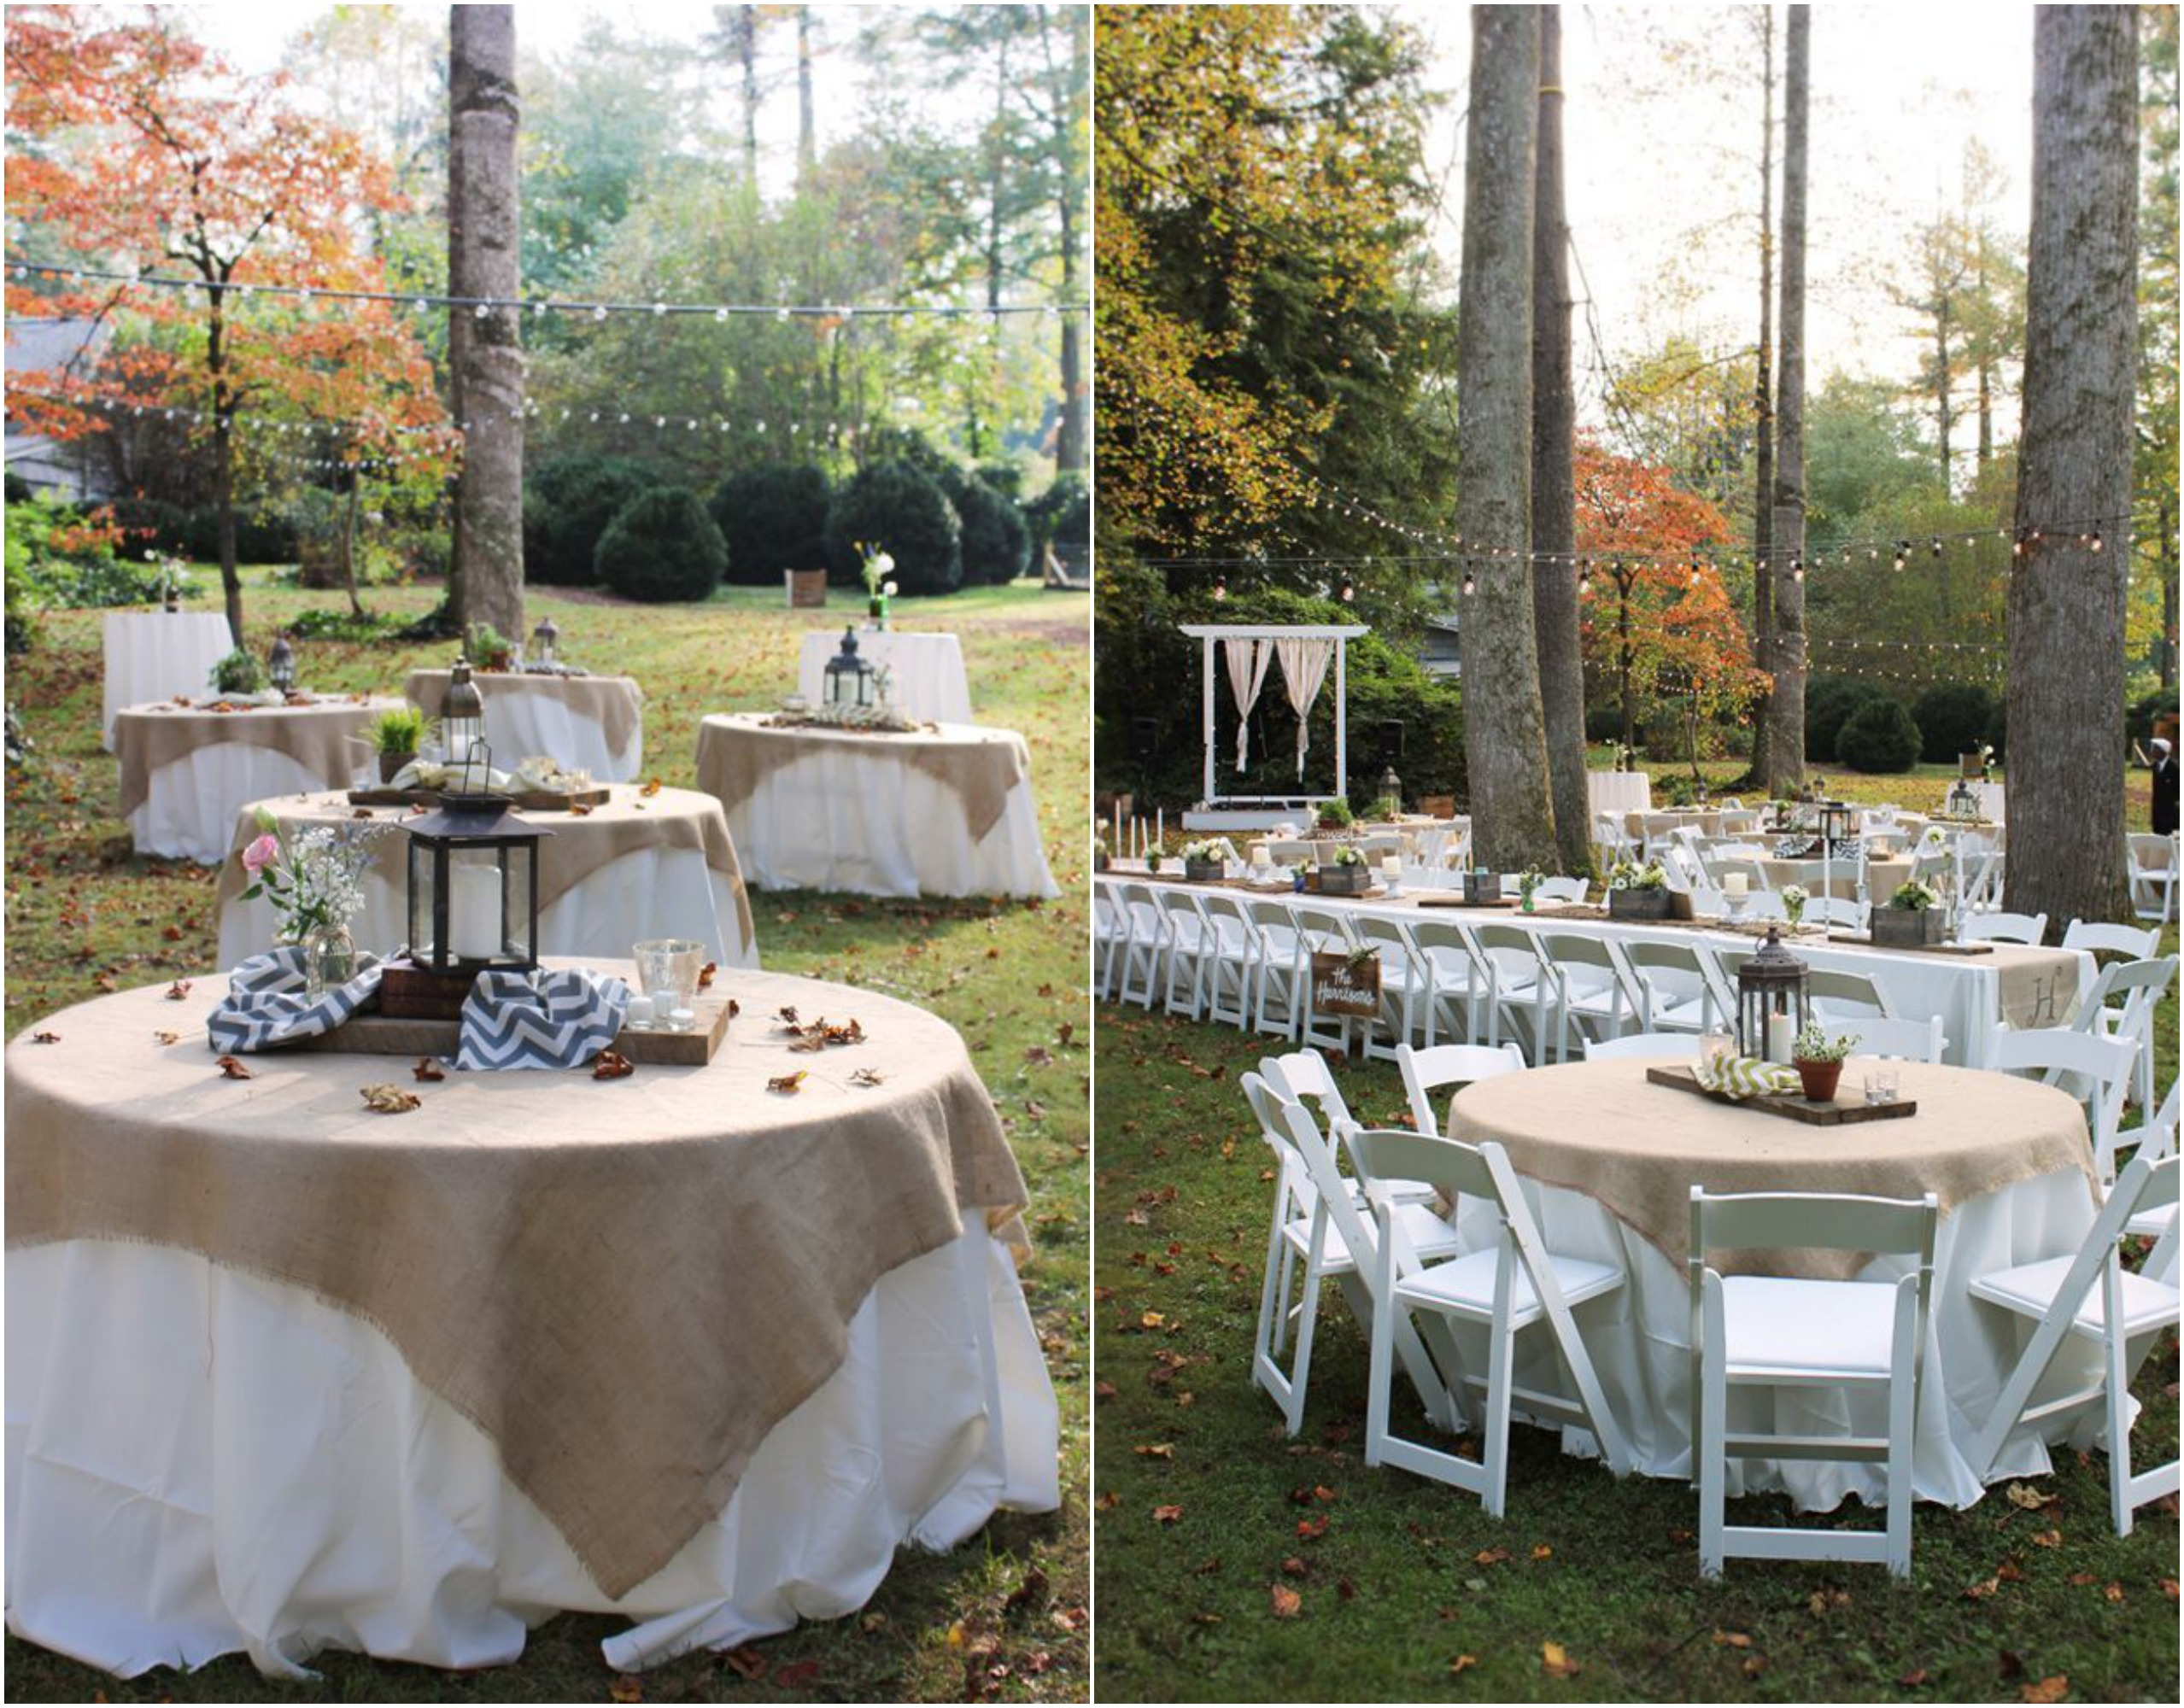 Rustic Backyard Wedding Reception Ideas : Rustic wedding  The Merry Bride